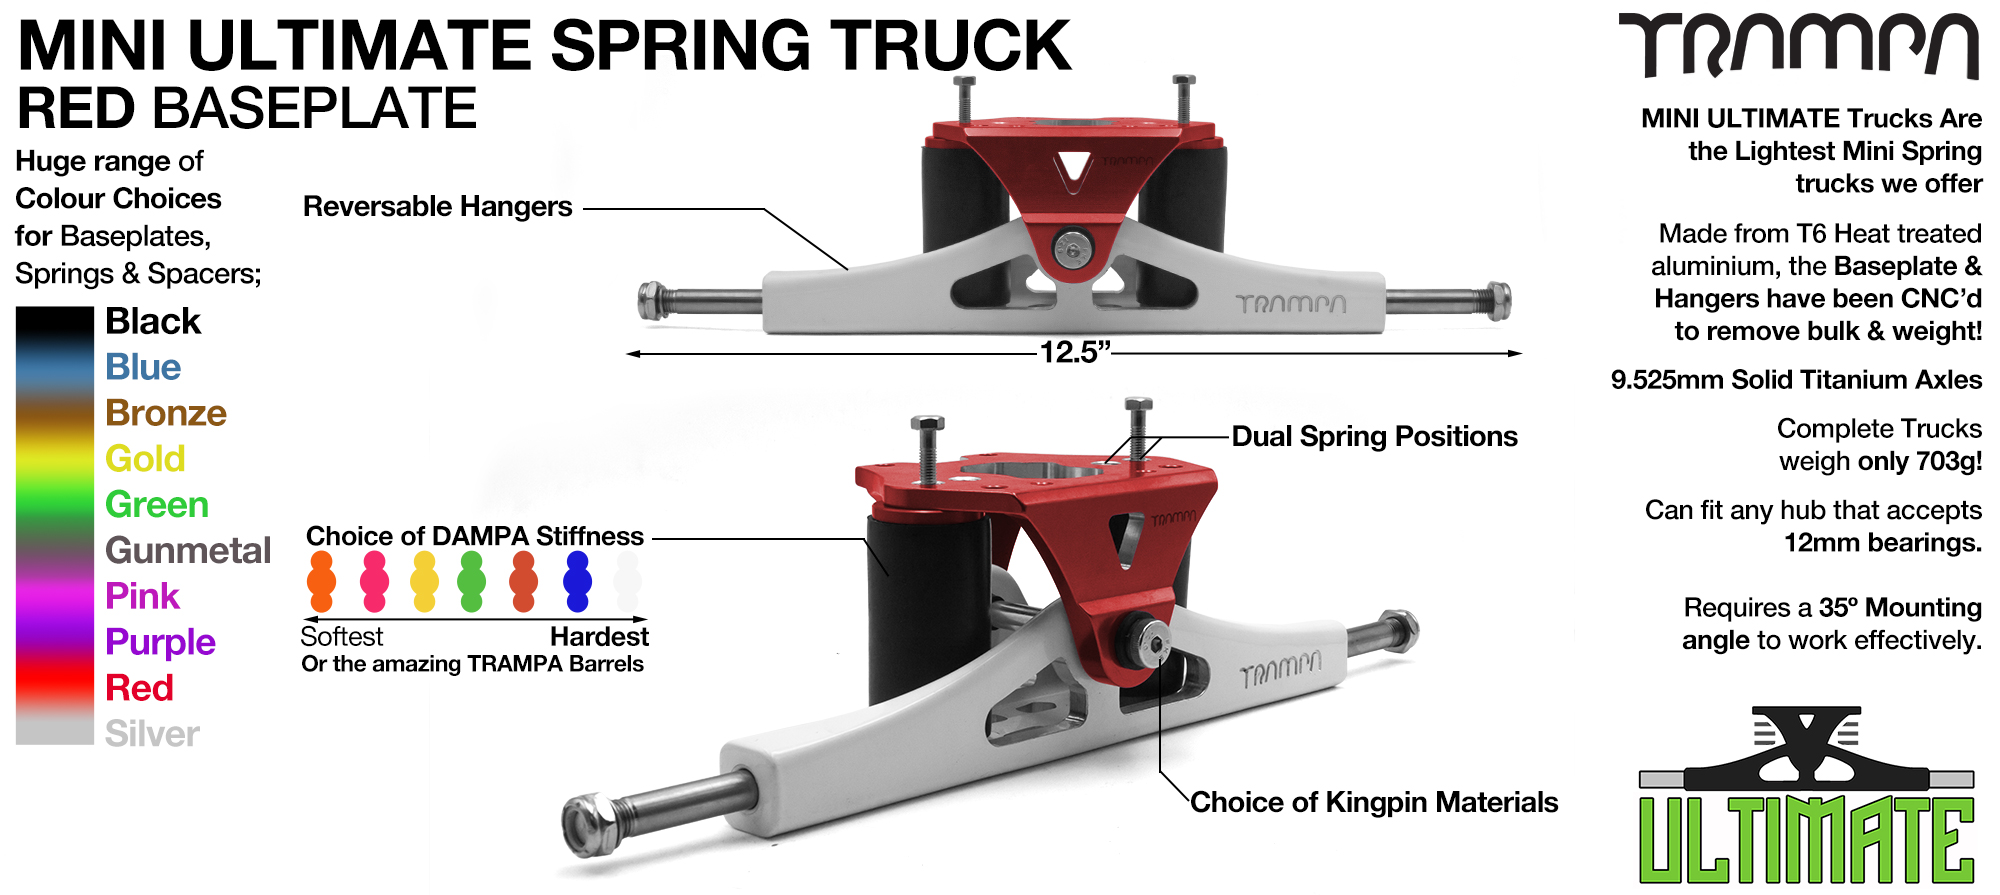 Mini ULTIMATE TRAMPA TRUCKS - CNC FORGED Channel Hanger with 9.525mm TITANIUM Axle CNC Baseplate TITANIUM Kingpin - RED